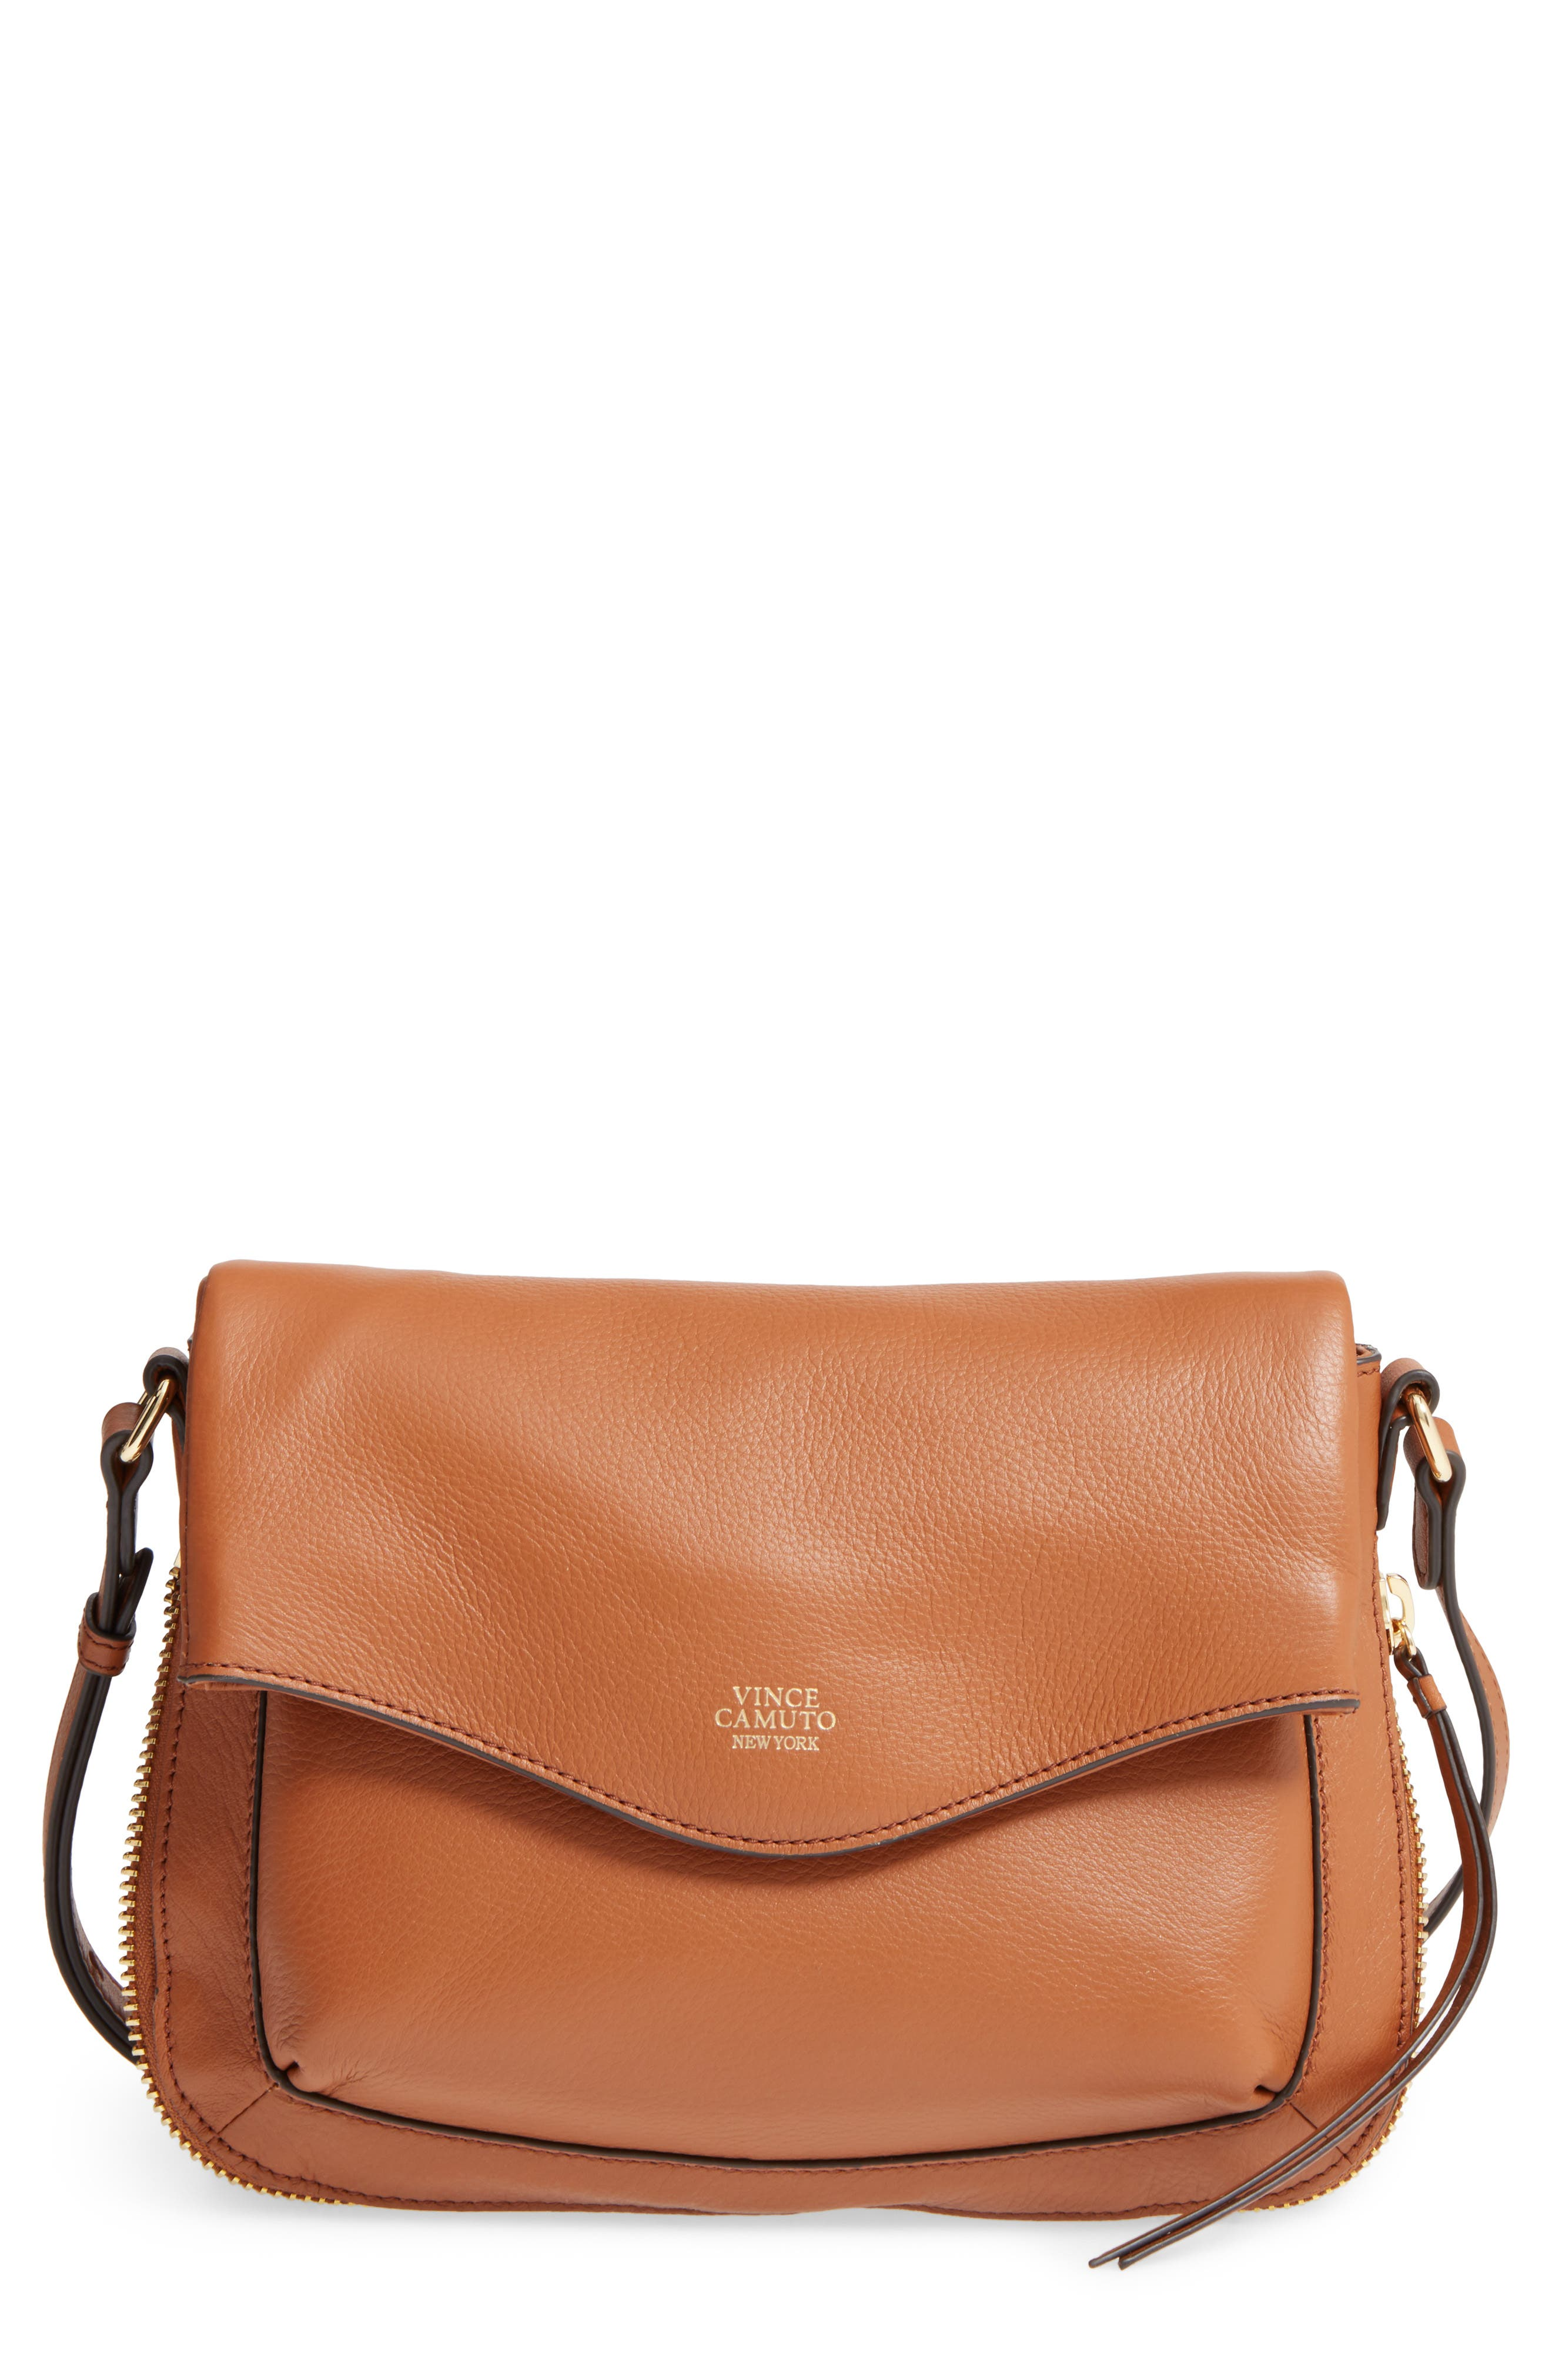 Vince Camuto Dafni Leather Crossbody (Nordstrom Exclusive)